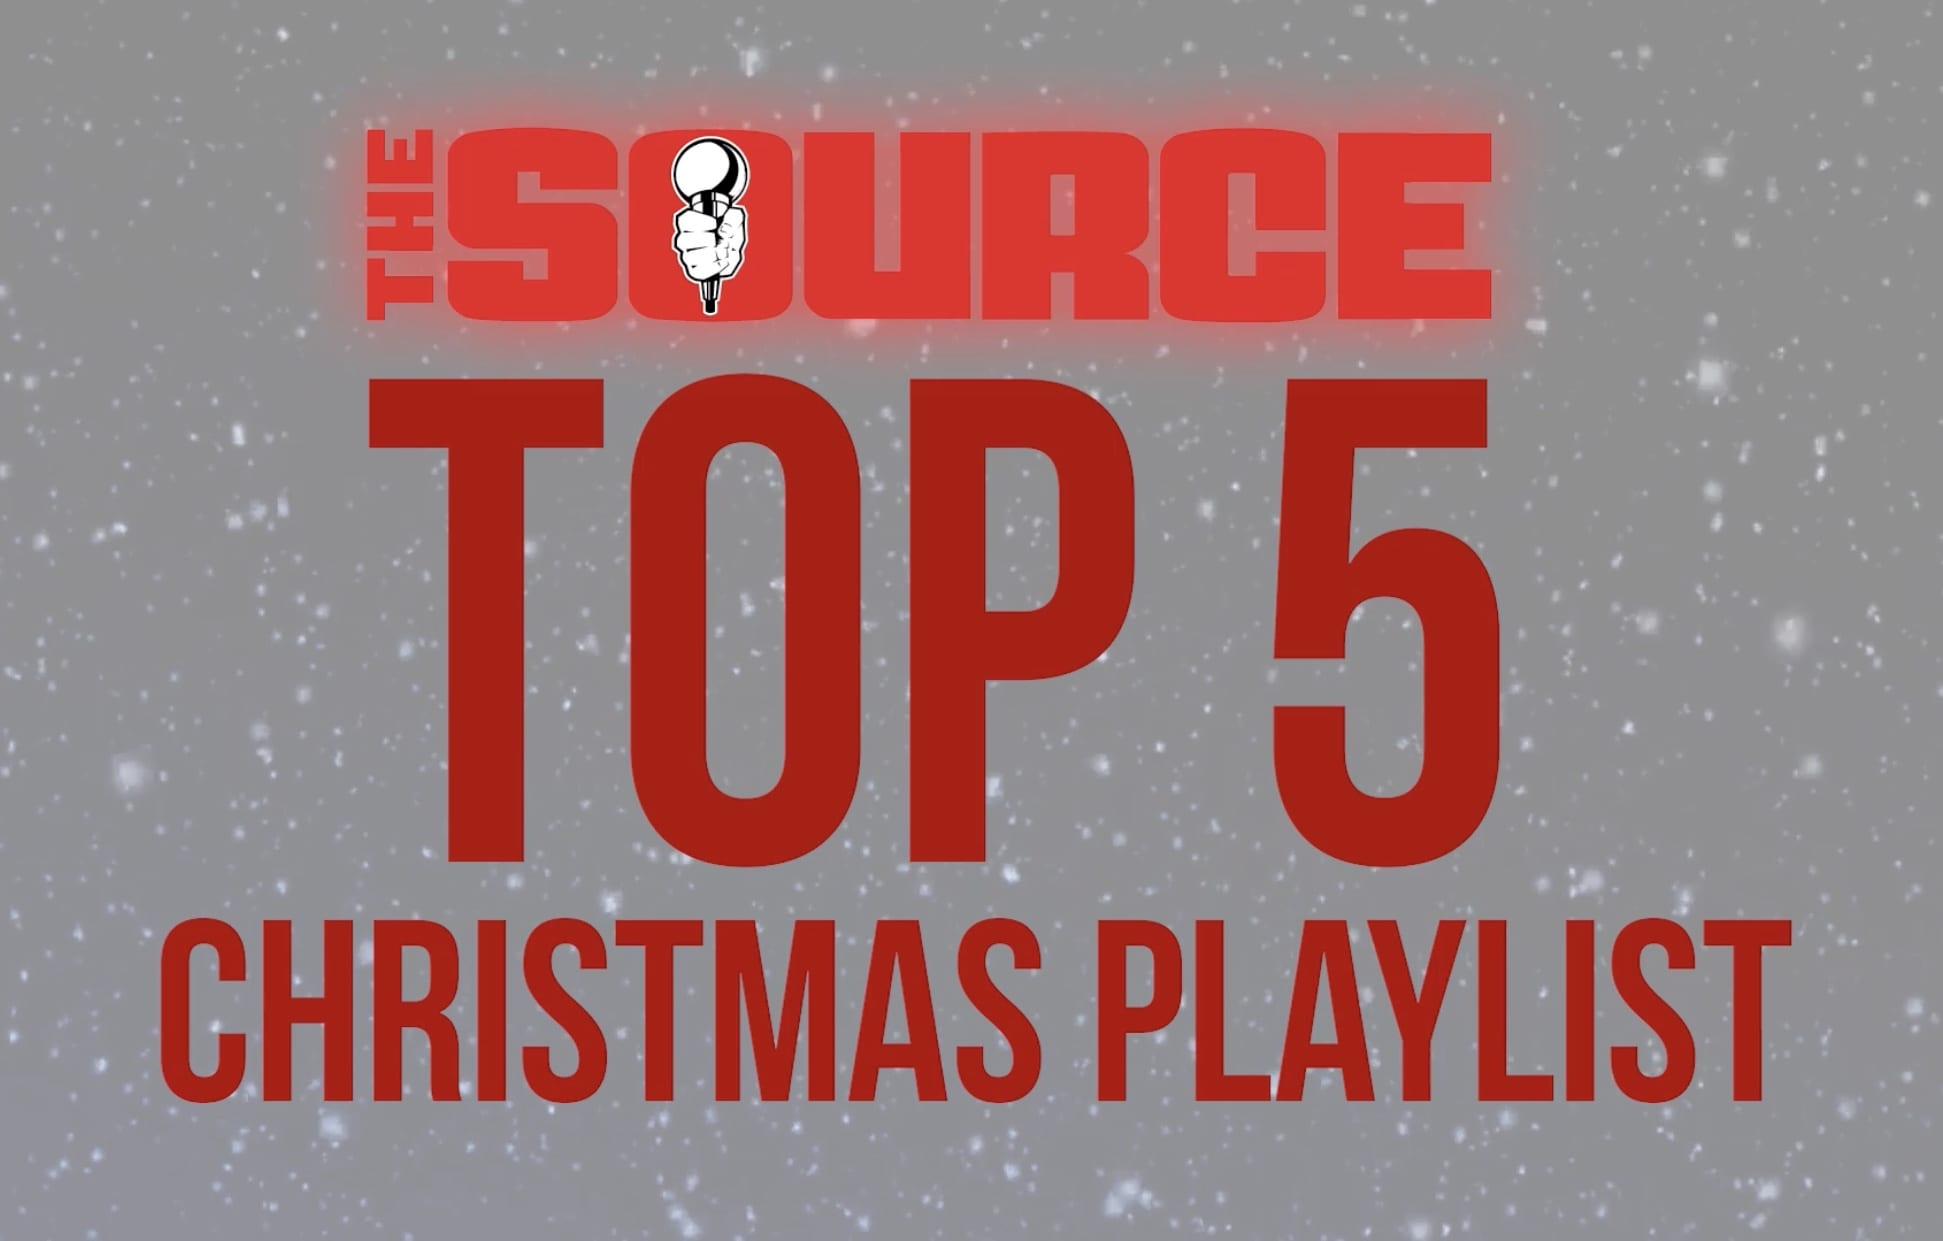 Top Christmas Songs.Watch Now The Source Top 5 Christmas Songs The Source